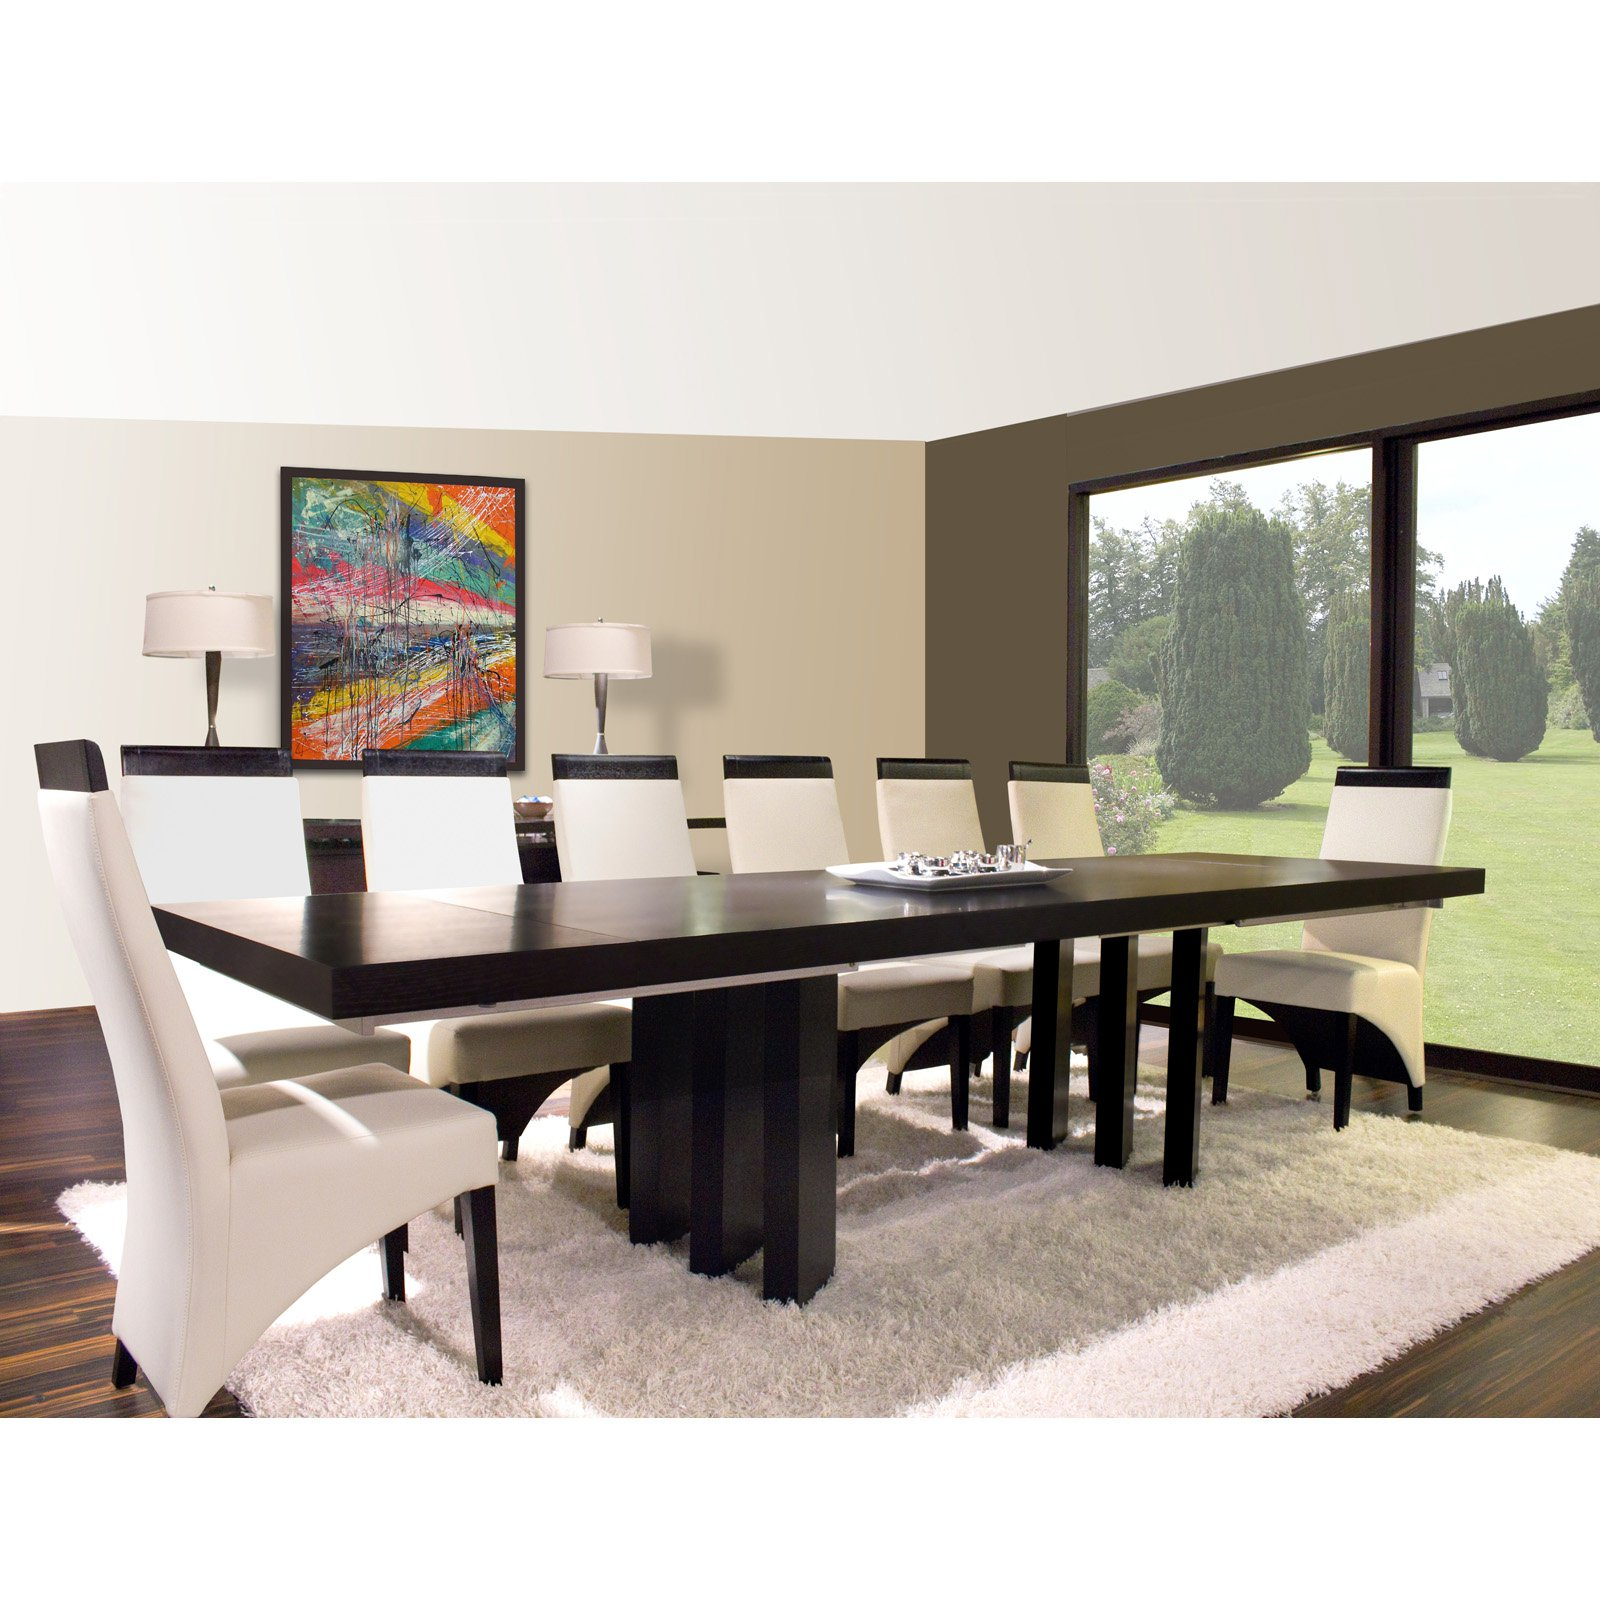 Verona Rectangular Extension Dining Table - Wenge